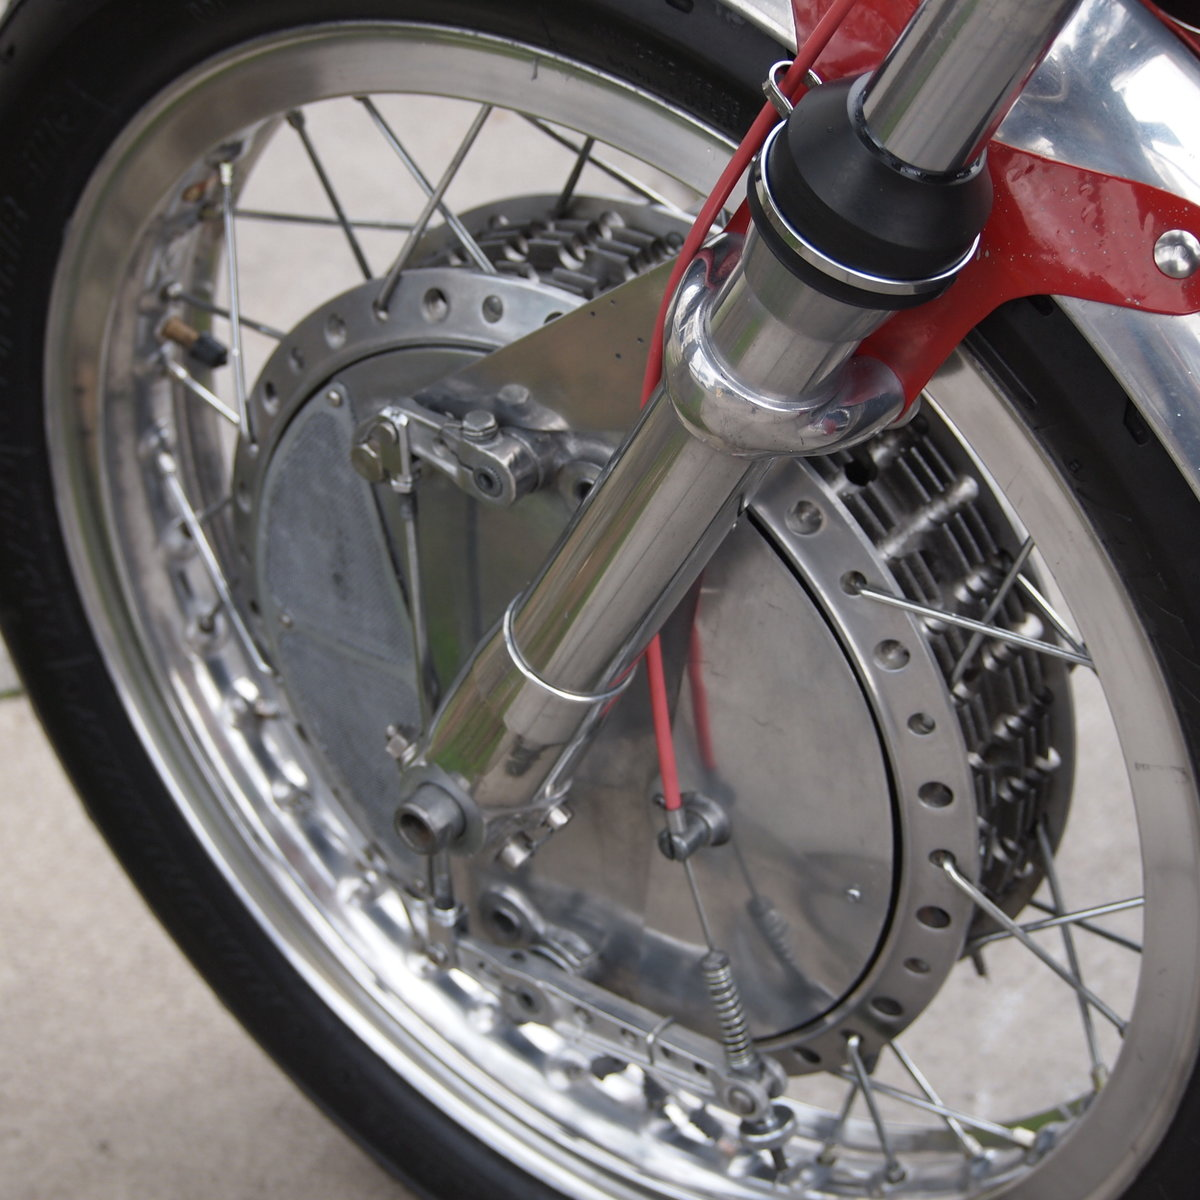 1958 Velo-Metisse 500 Rickman, Very Special, L@@K On EBay. For Sale (picture 6 of 6)